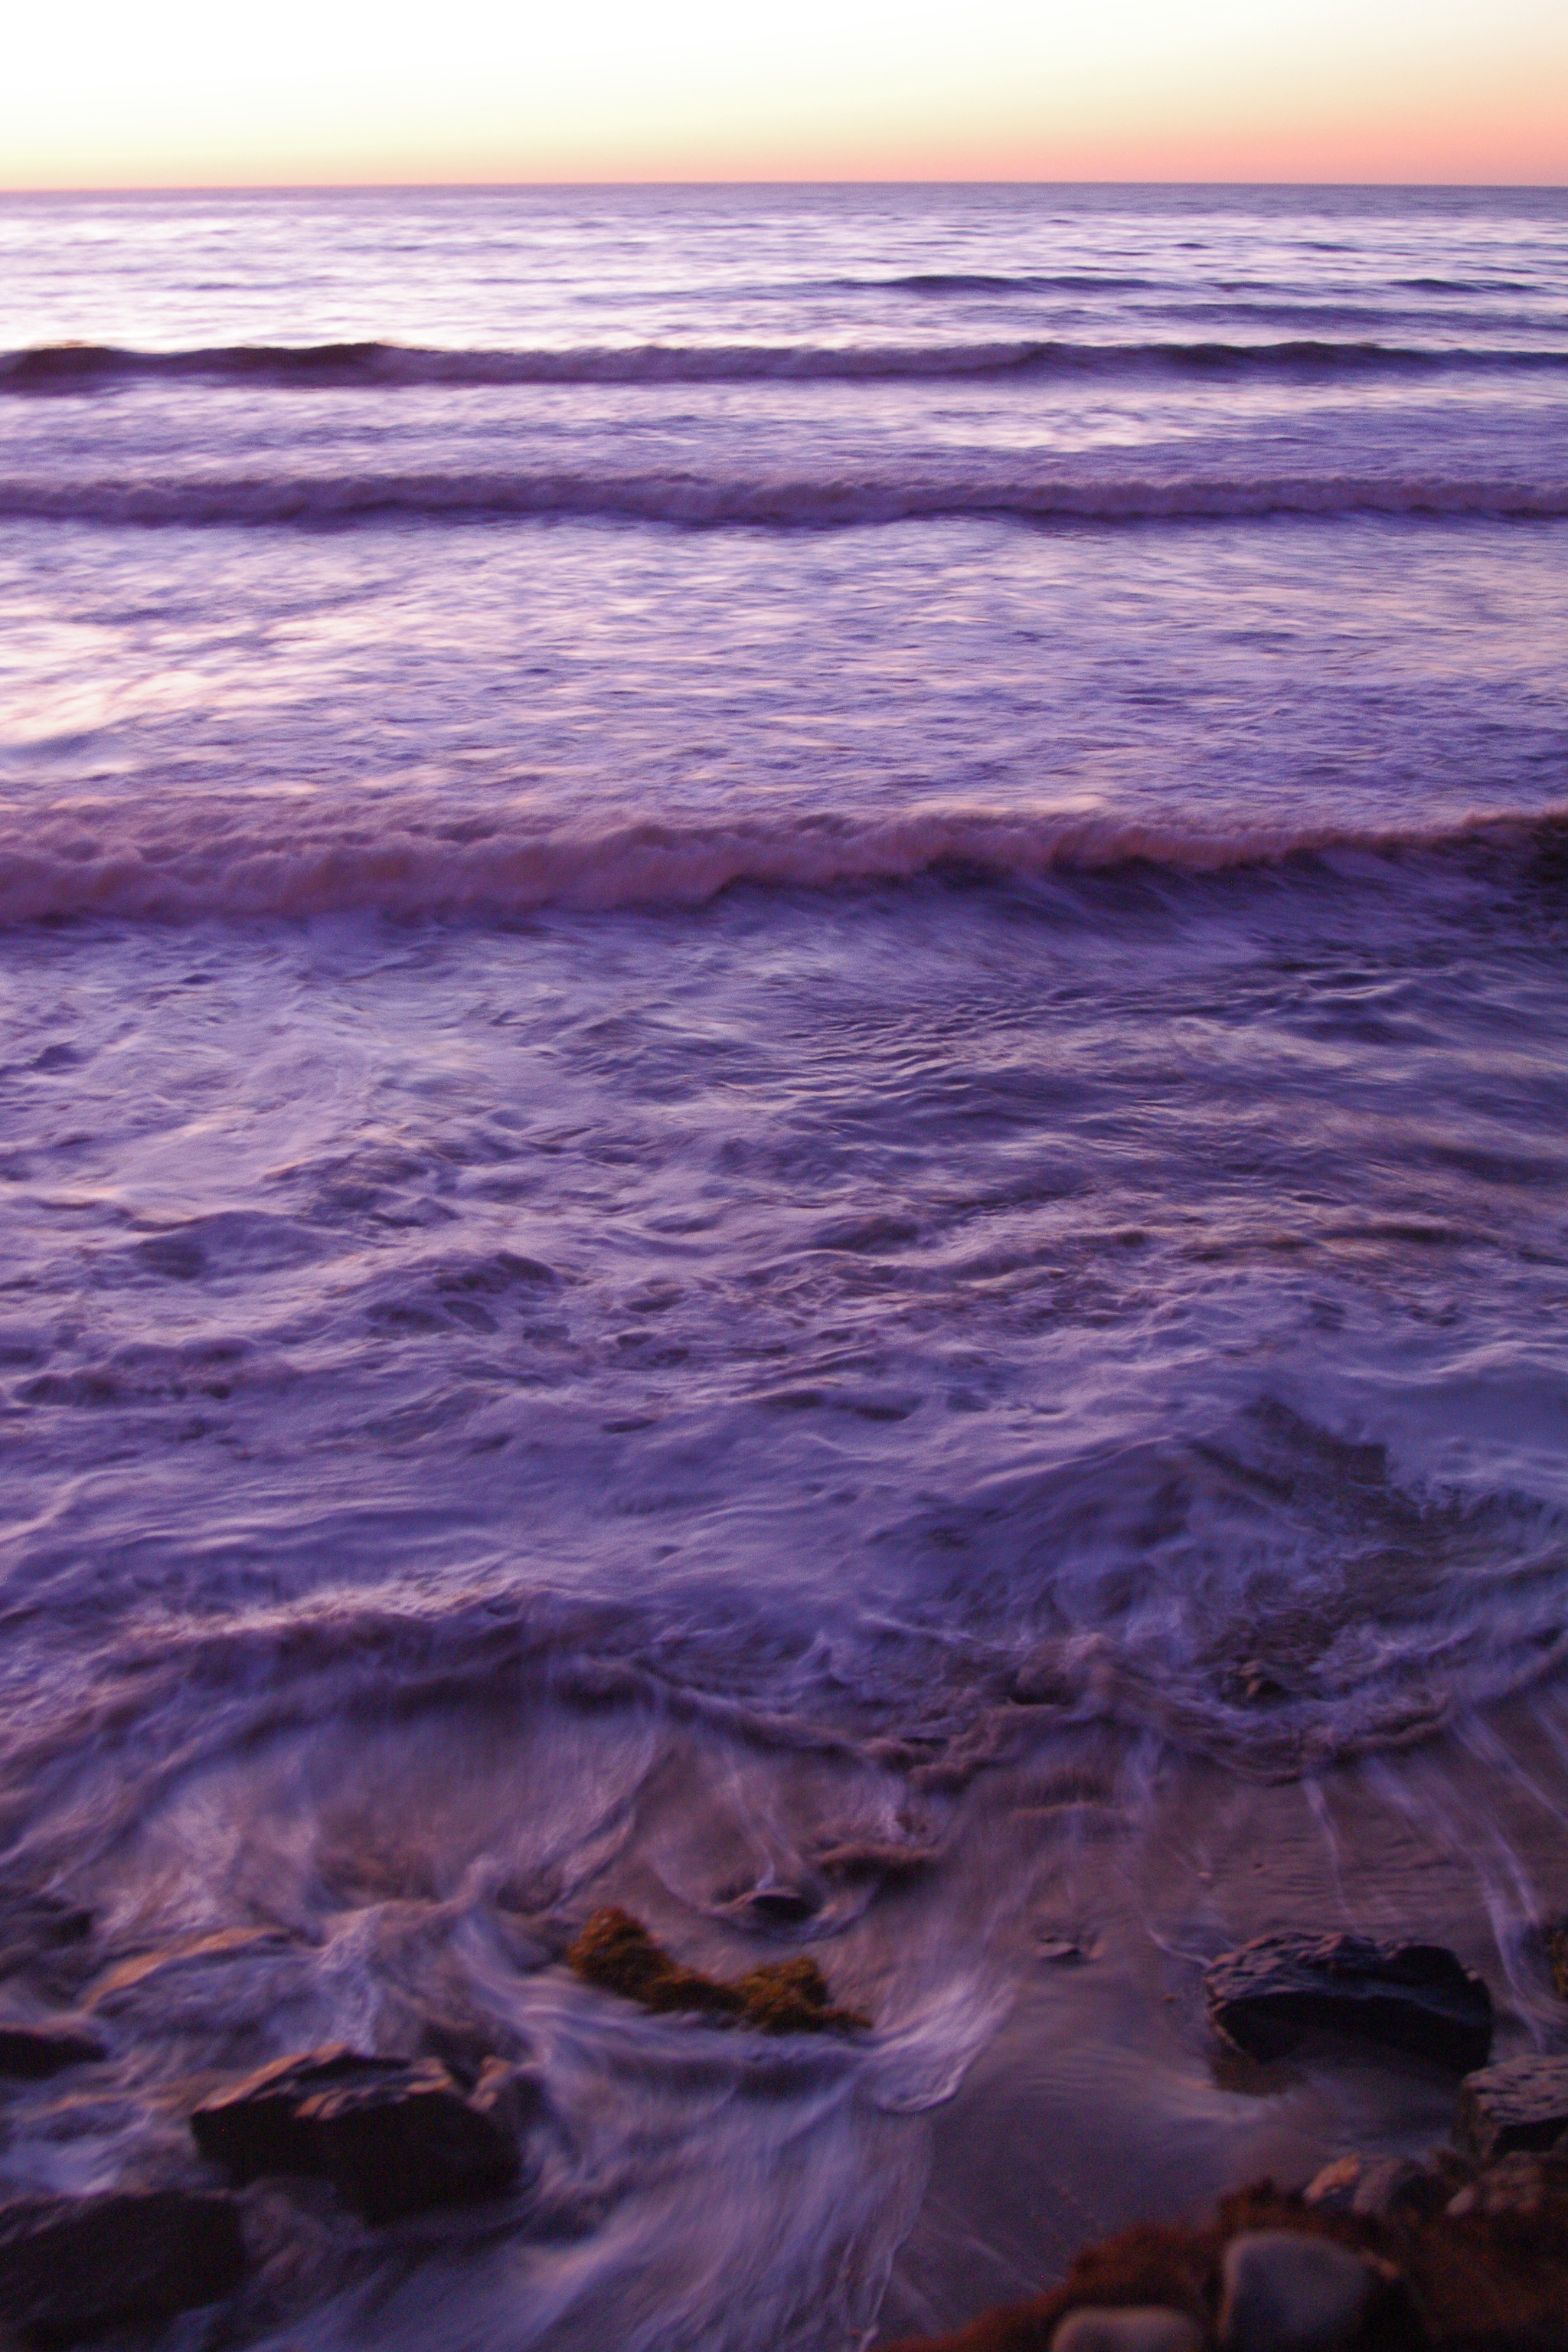 Free Stock Photo 2567 Purple Ocean At Sunset Freeimageslive